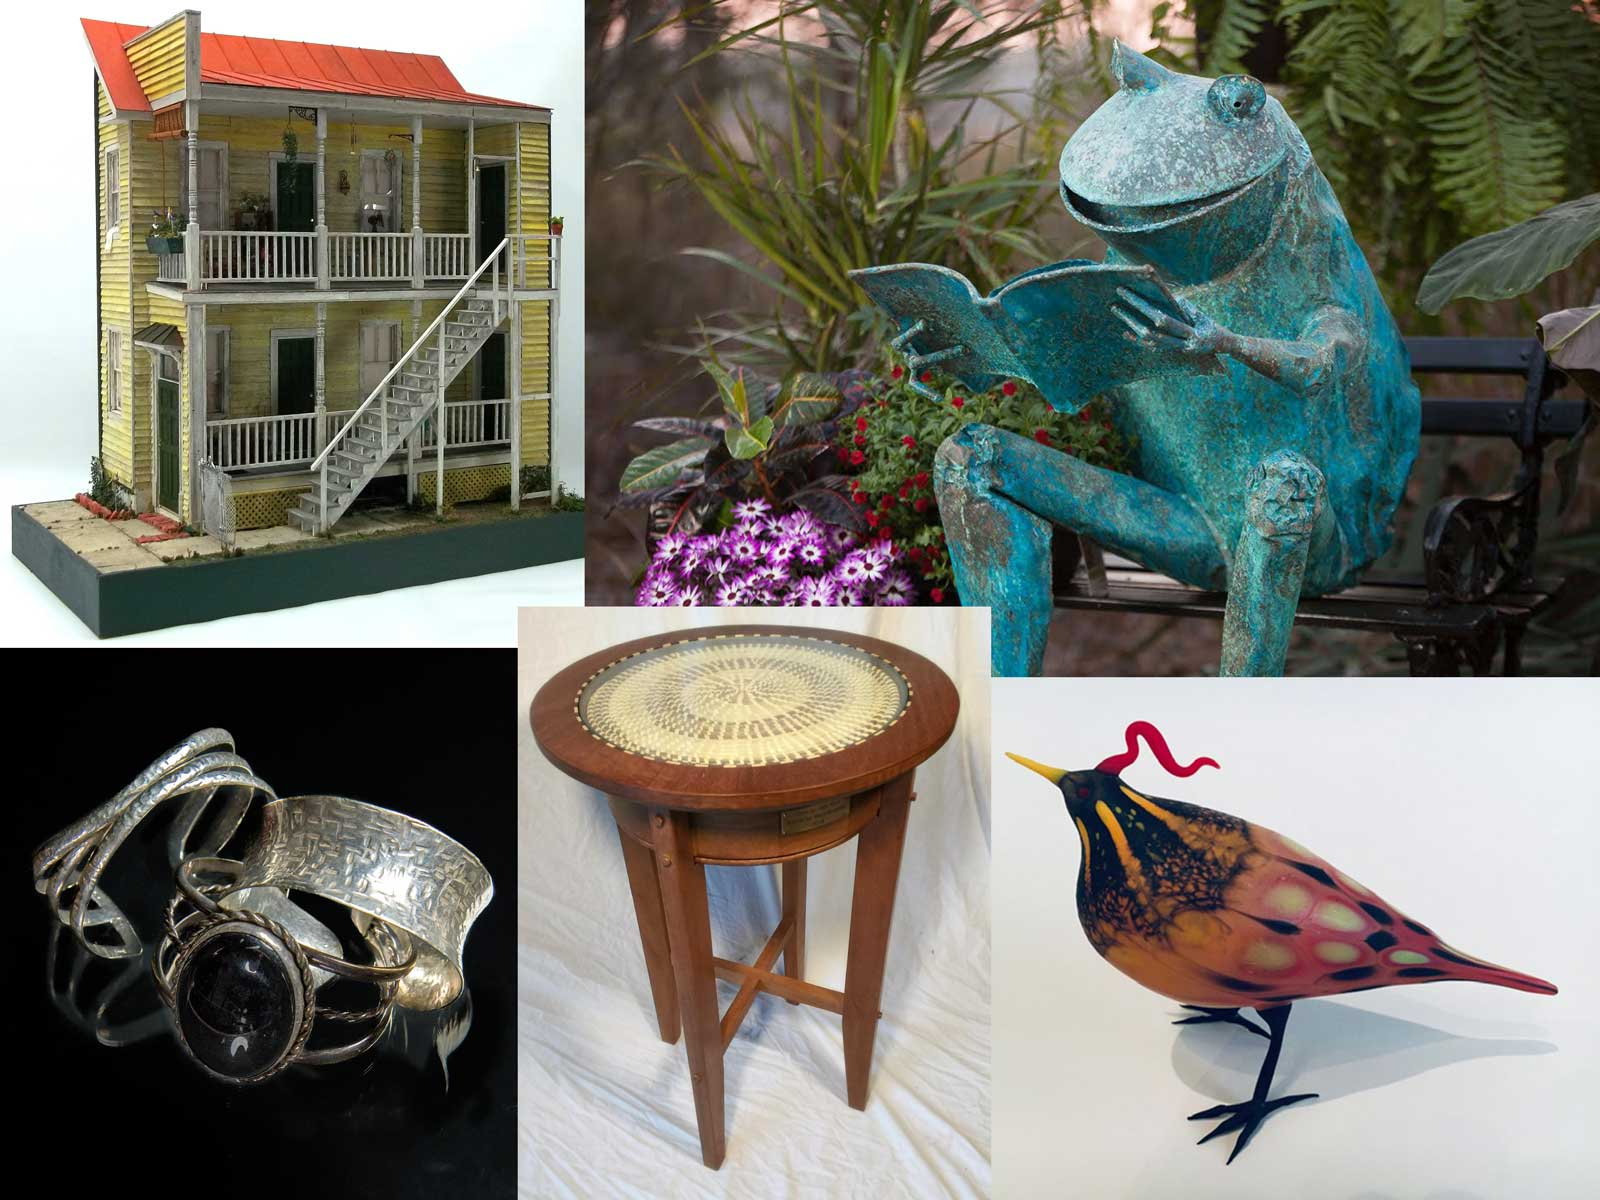 Lowcountry Artists Gallery, Charleston, 3d sculpture, miniature contruction, glass, Furniture, jewelery, sweetgrass baskets